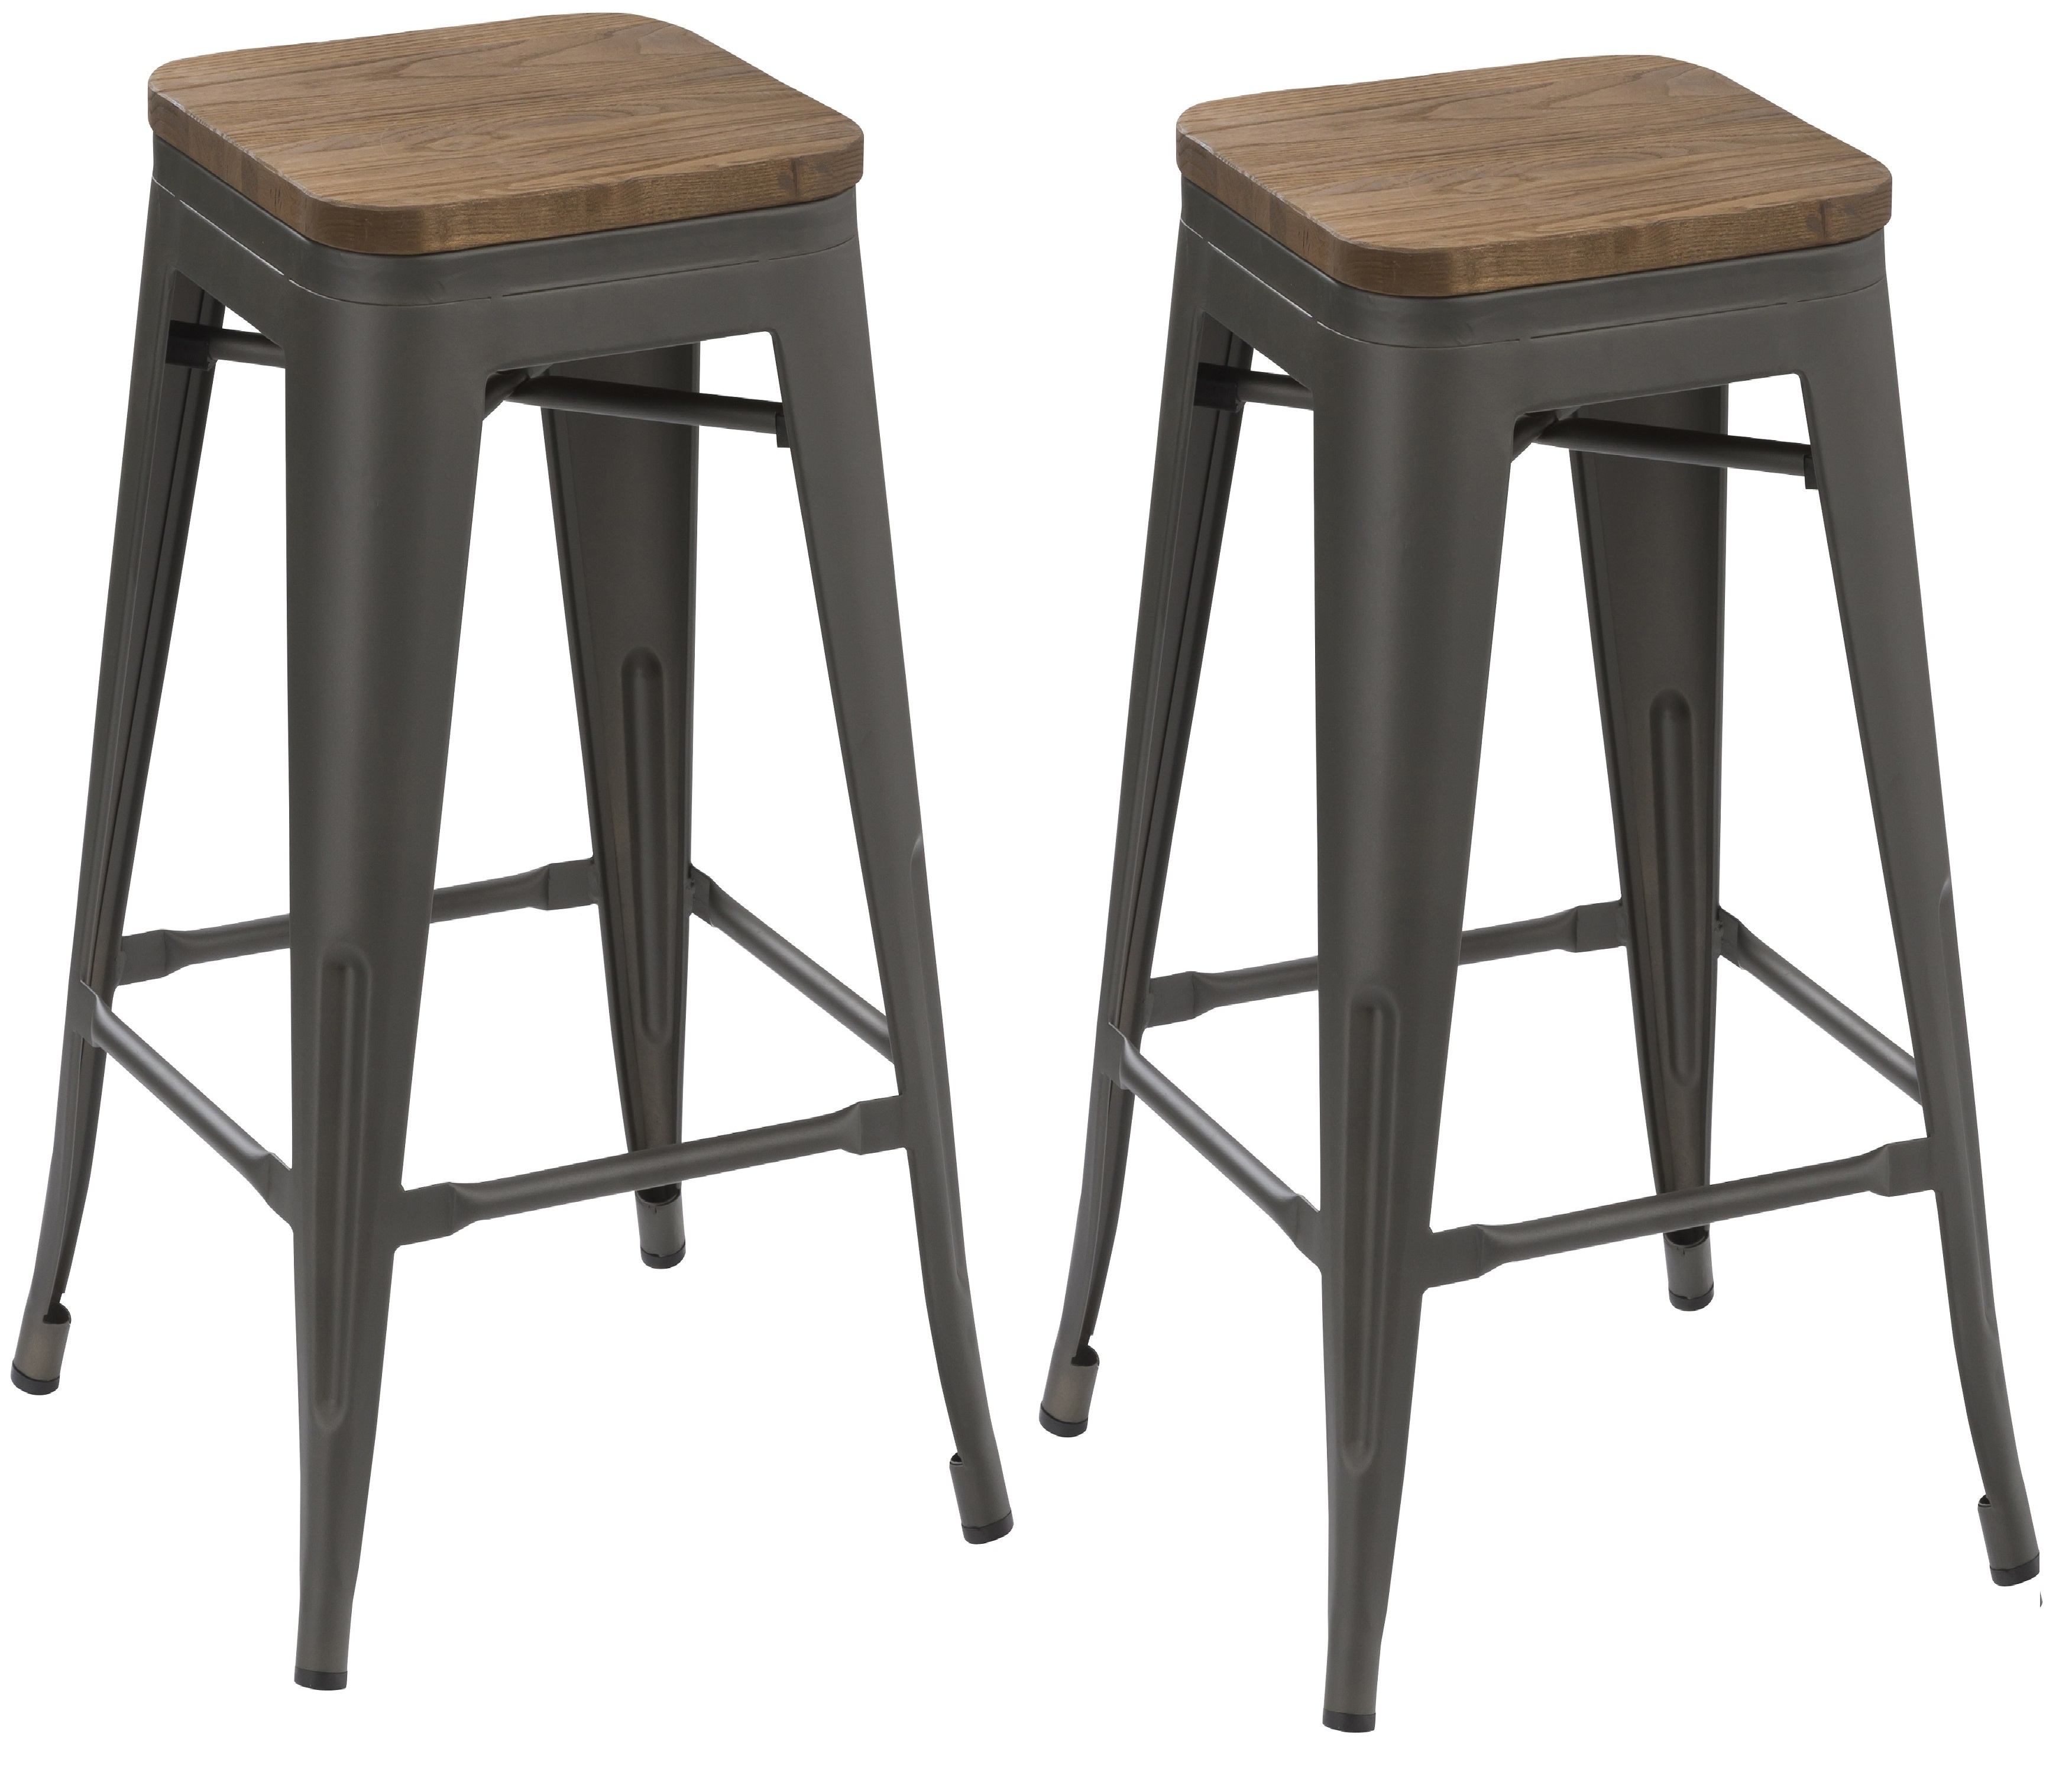 Rustic Modern Counter Stools Btexpert 30 Inch Industrial Metal Vintage Stackable